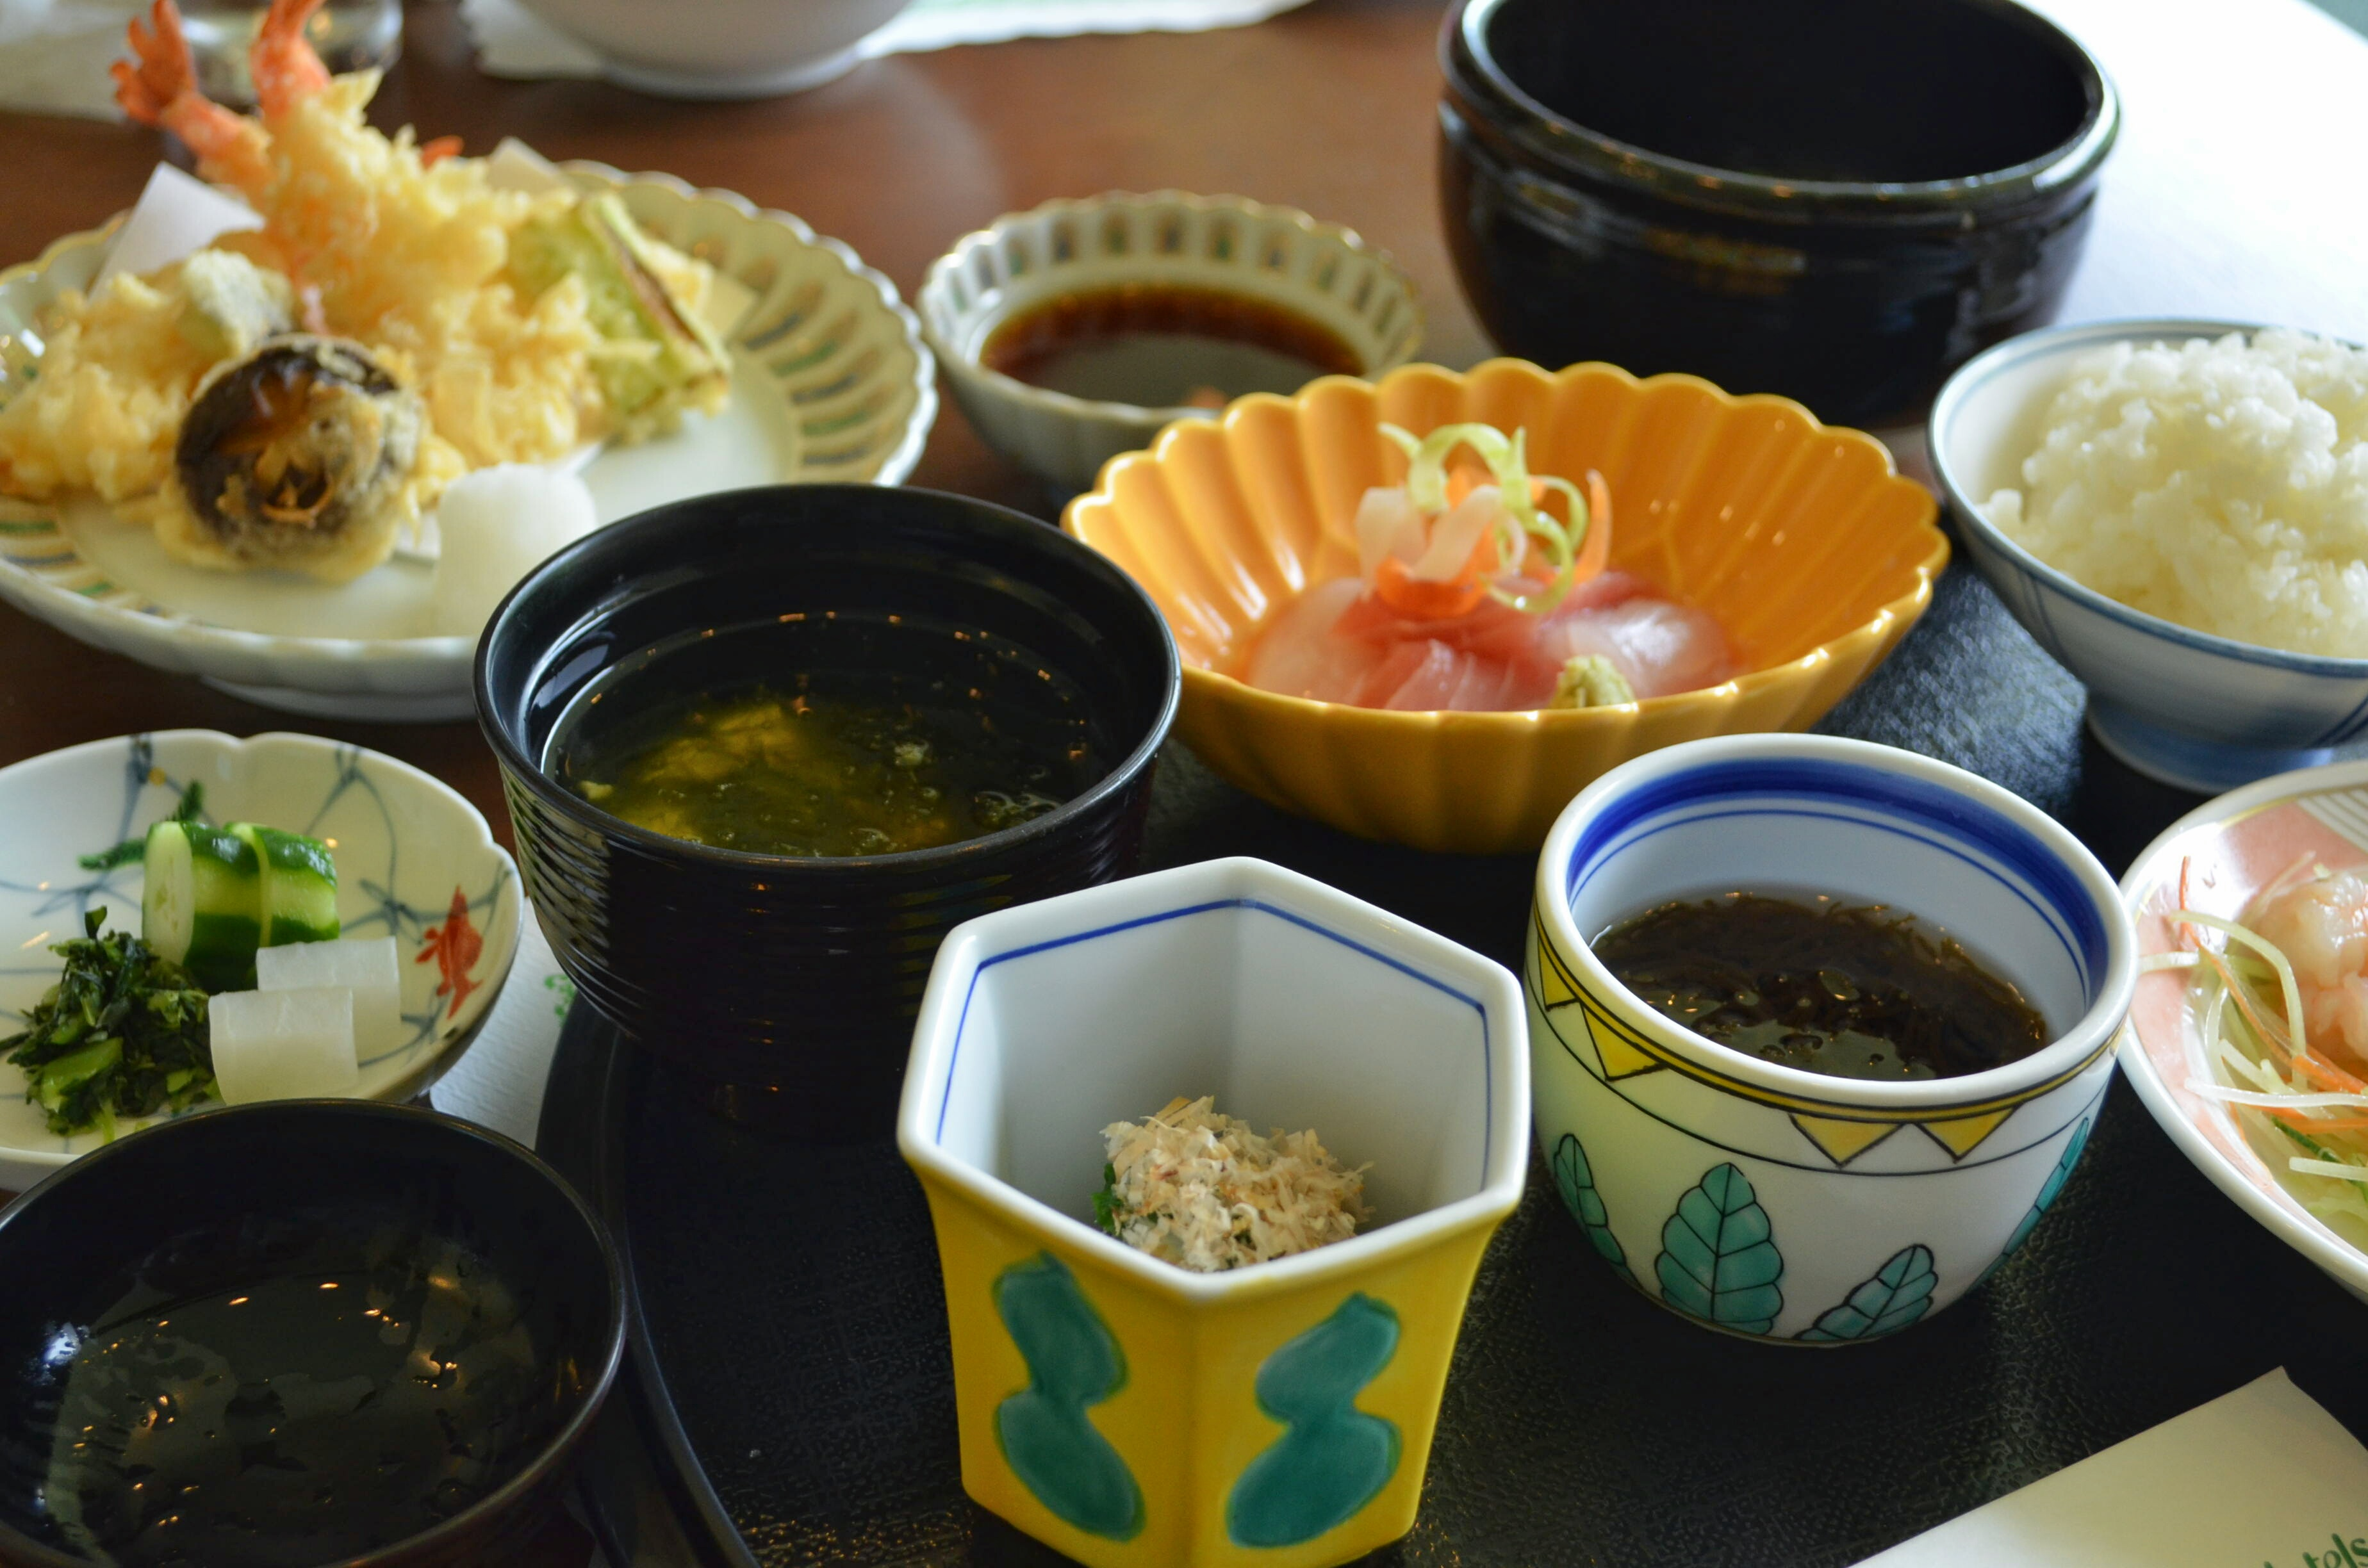 The Japanese set, with dessert as well